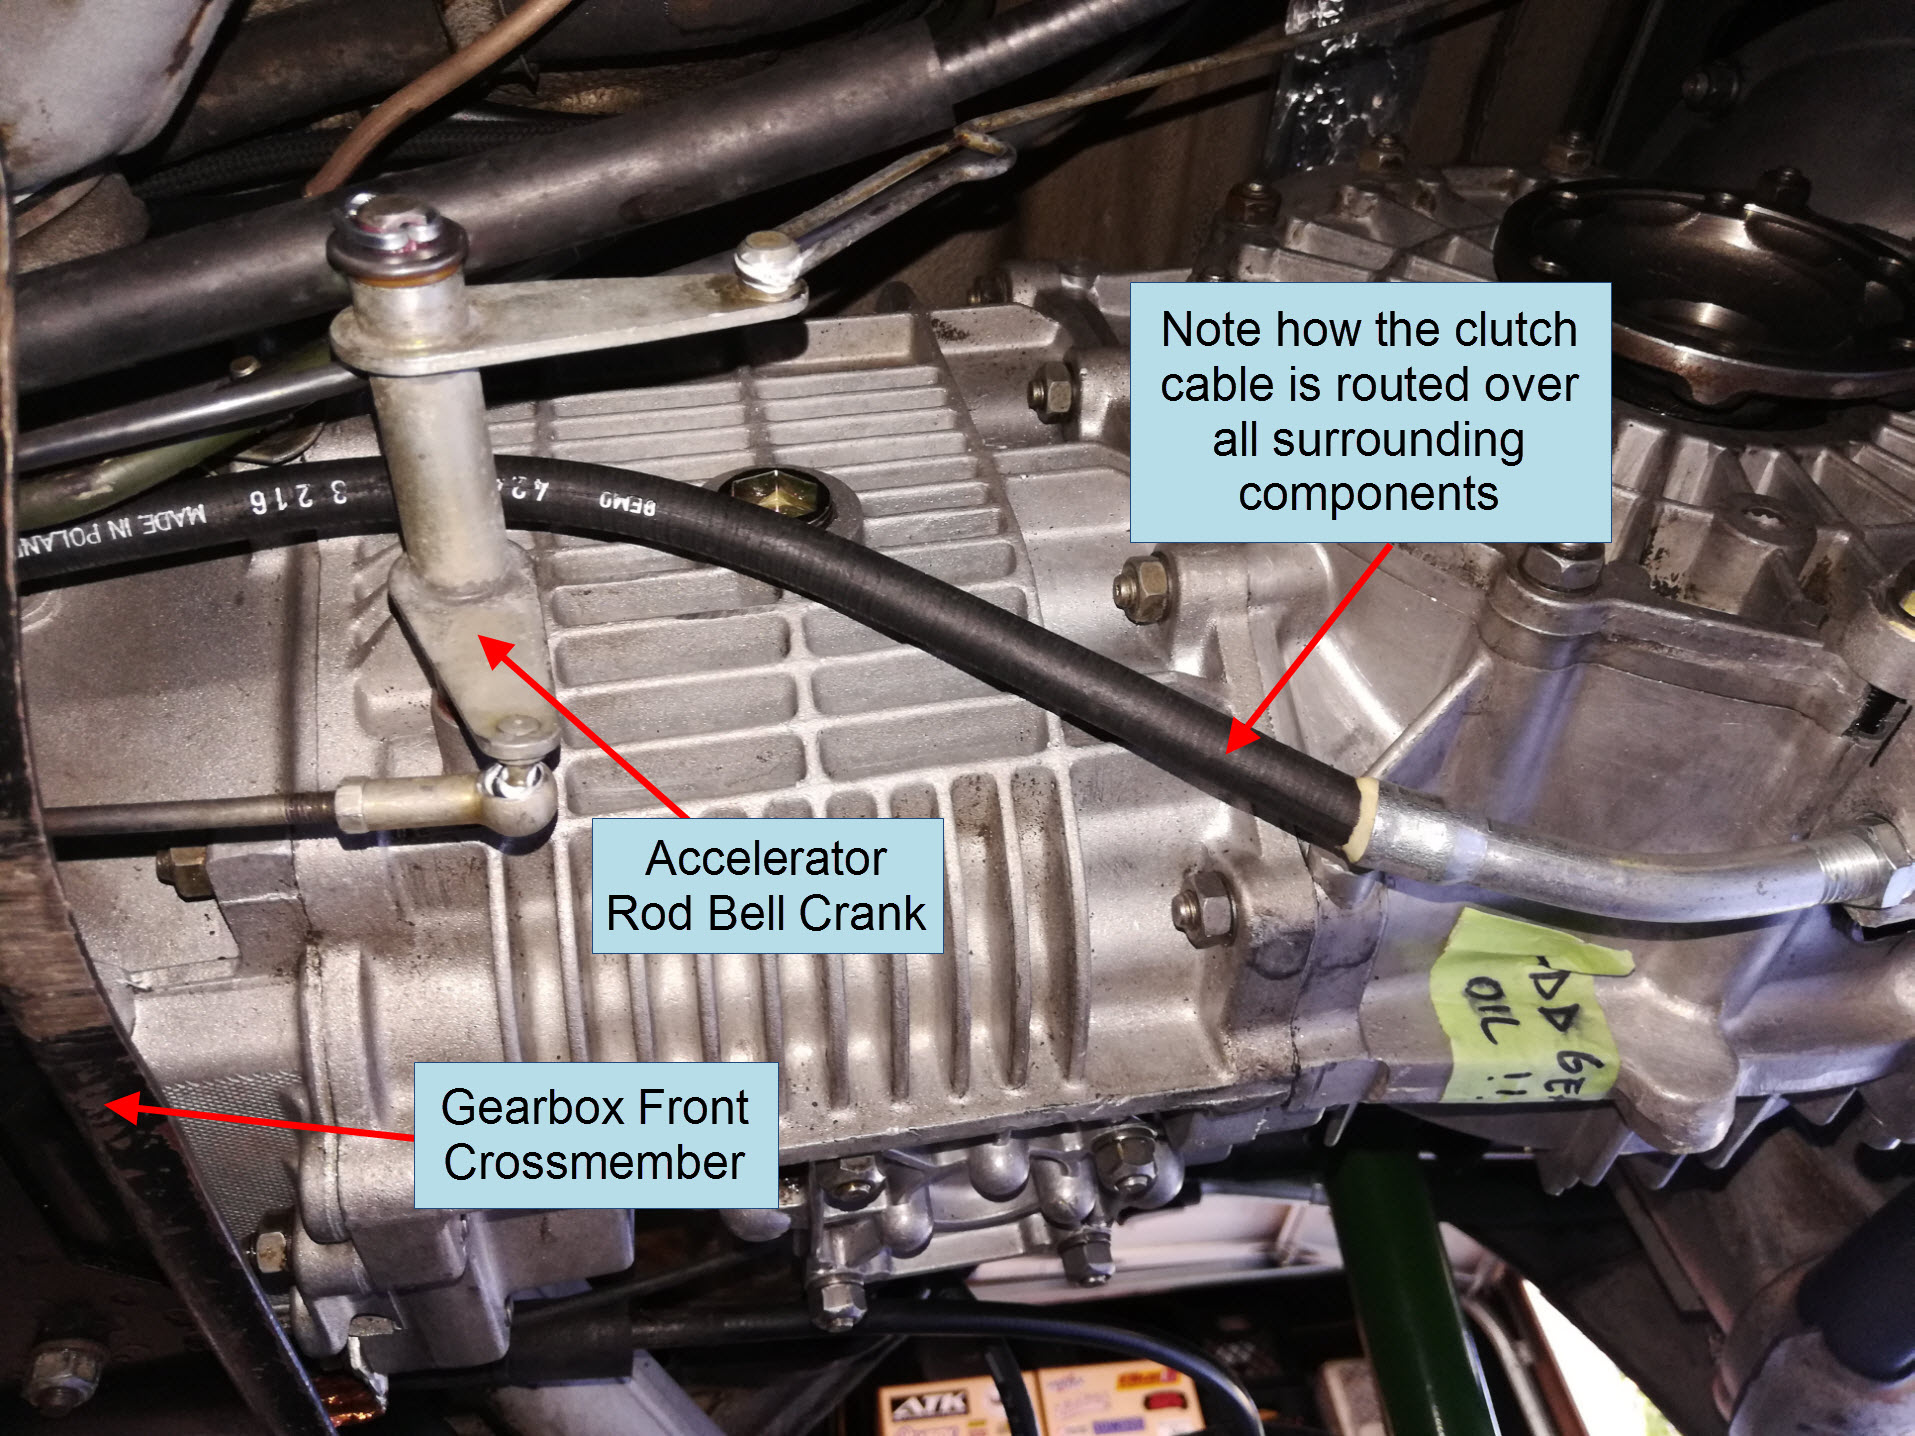 Air-cooled Porsche 911 clutch cable routing.